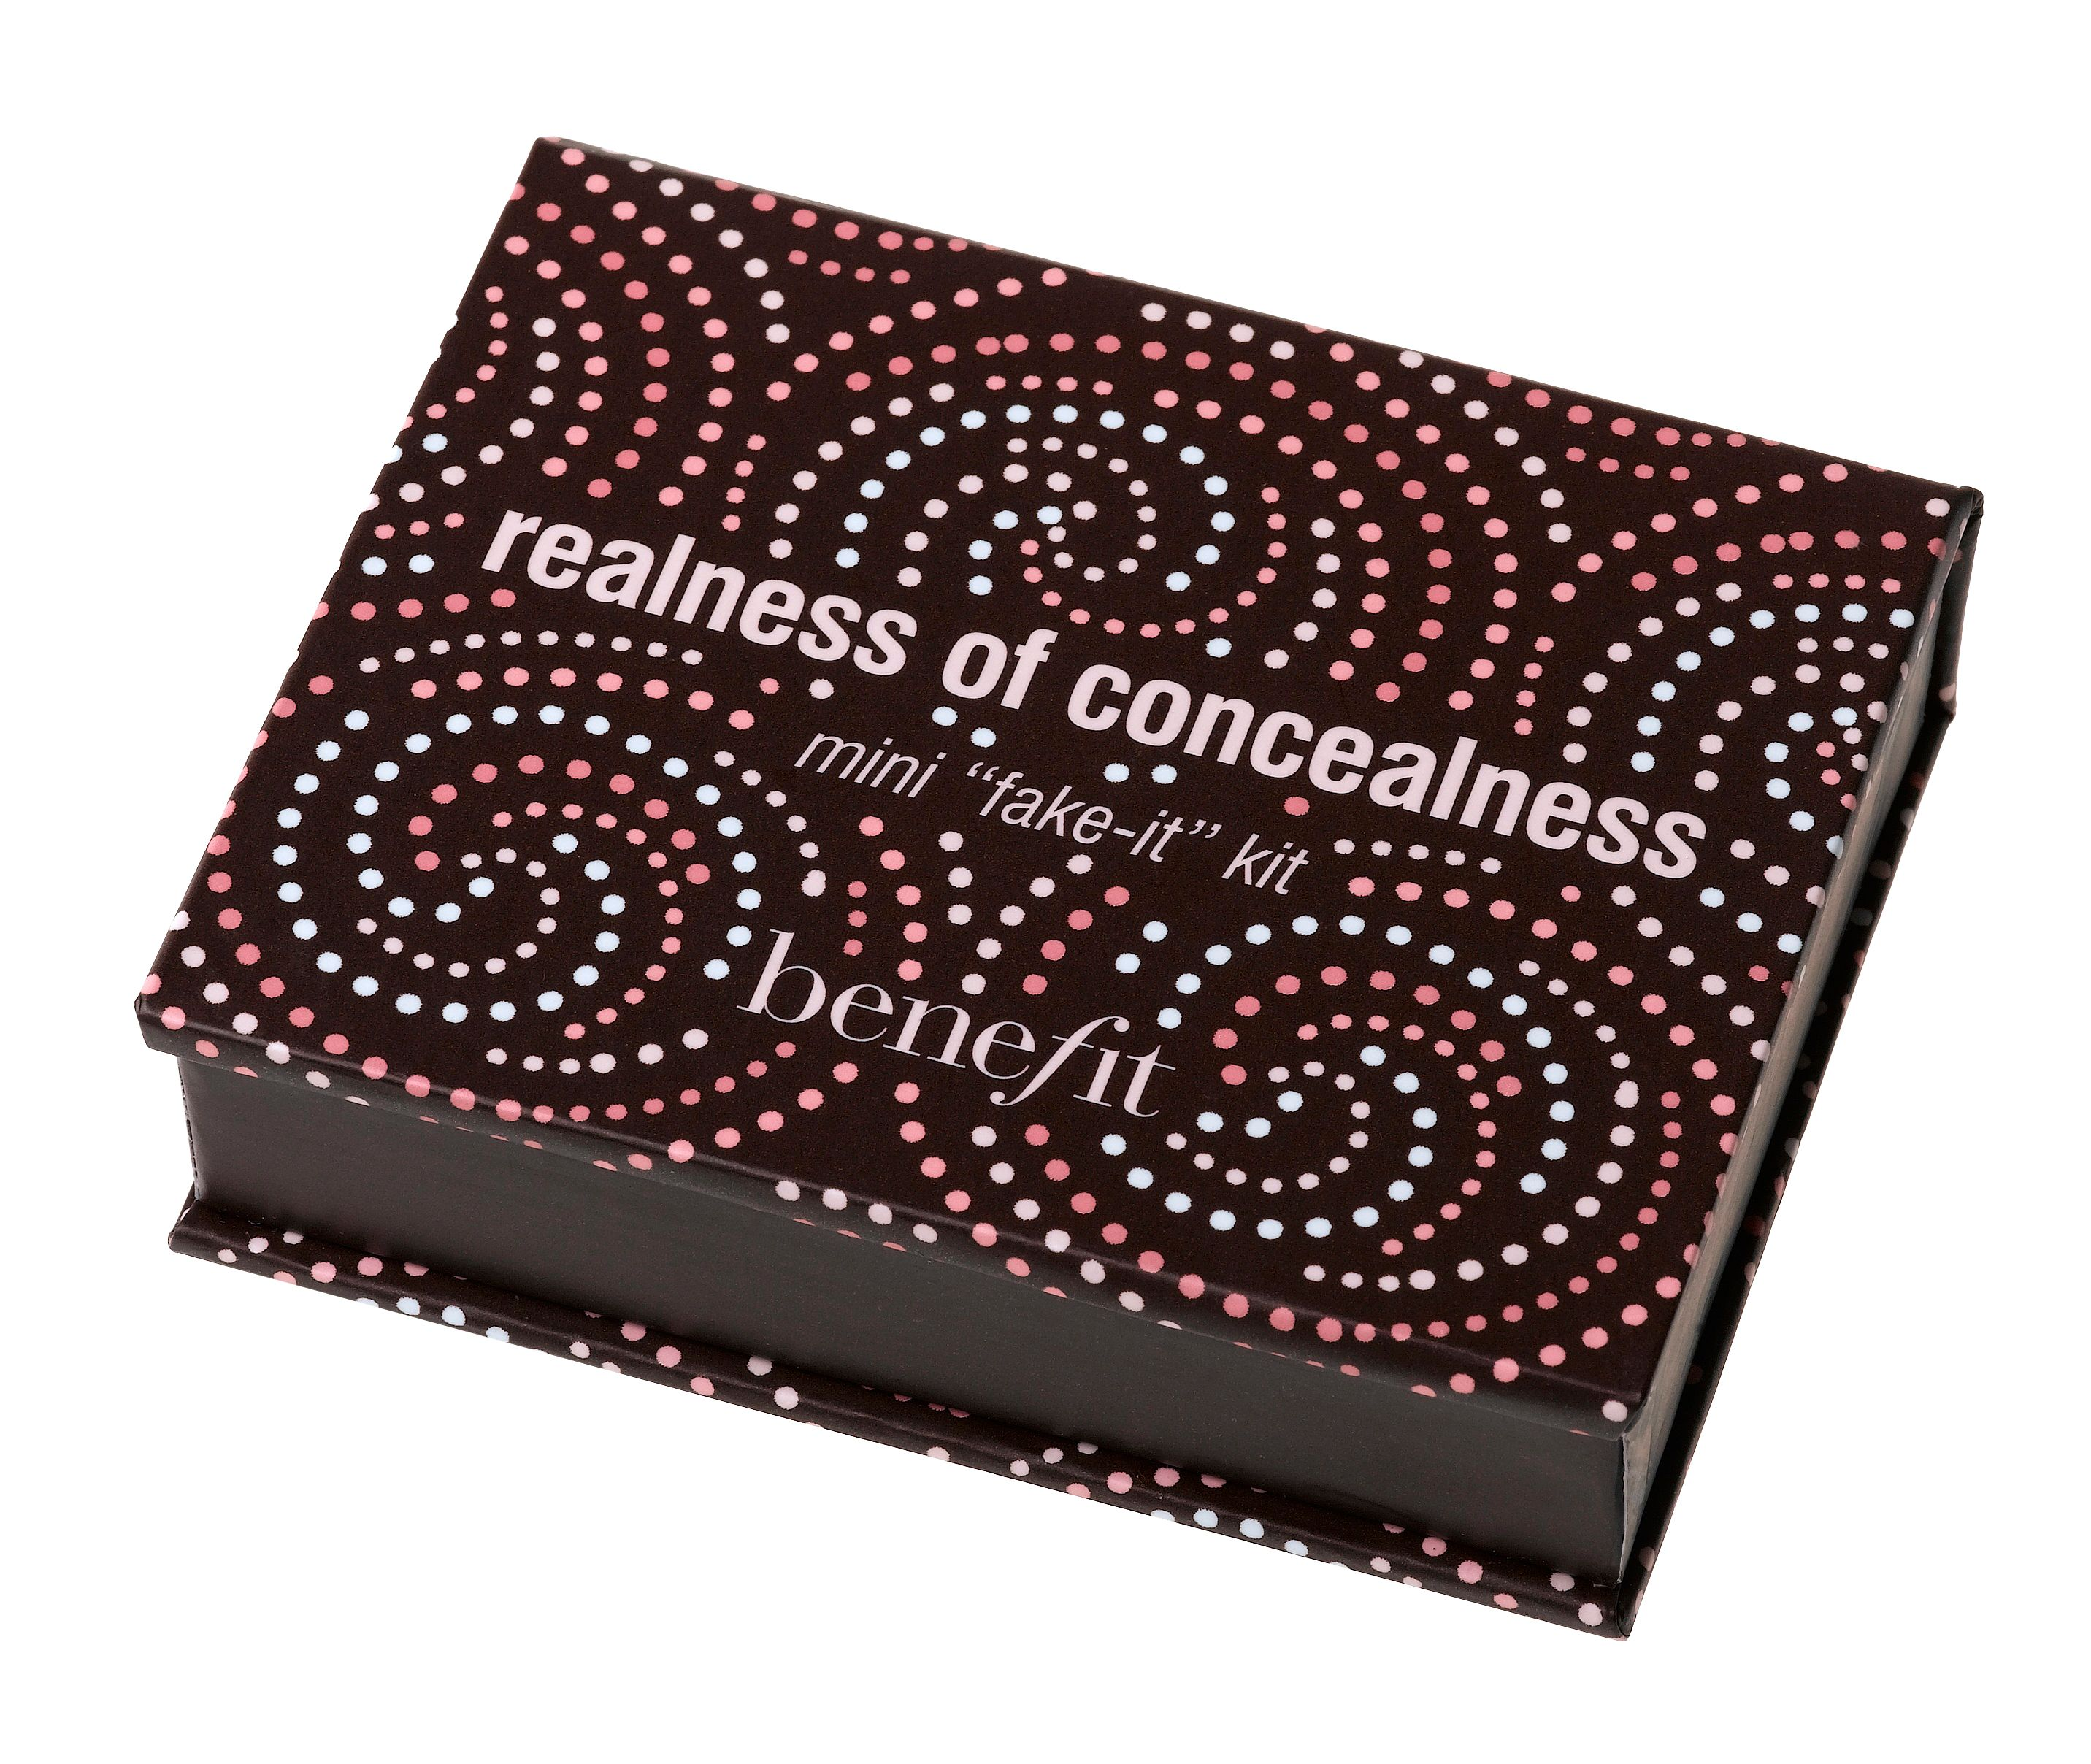 Realness Of Concealness Kit 9.7g